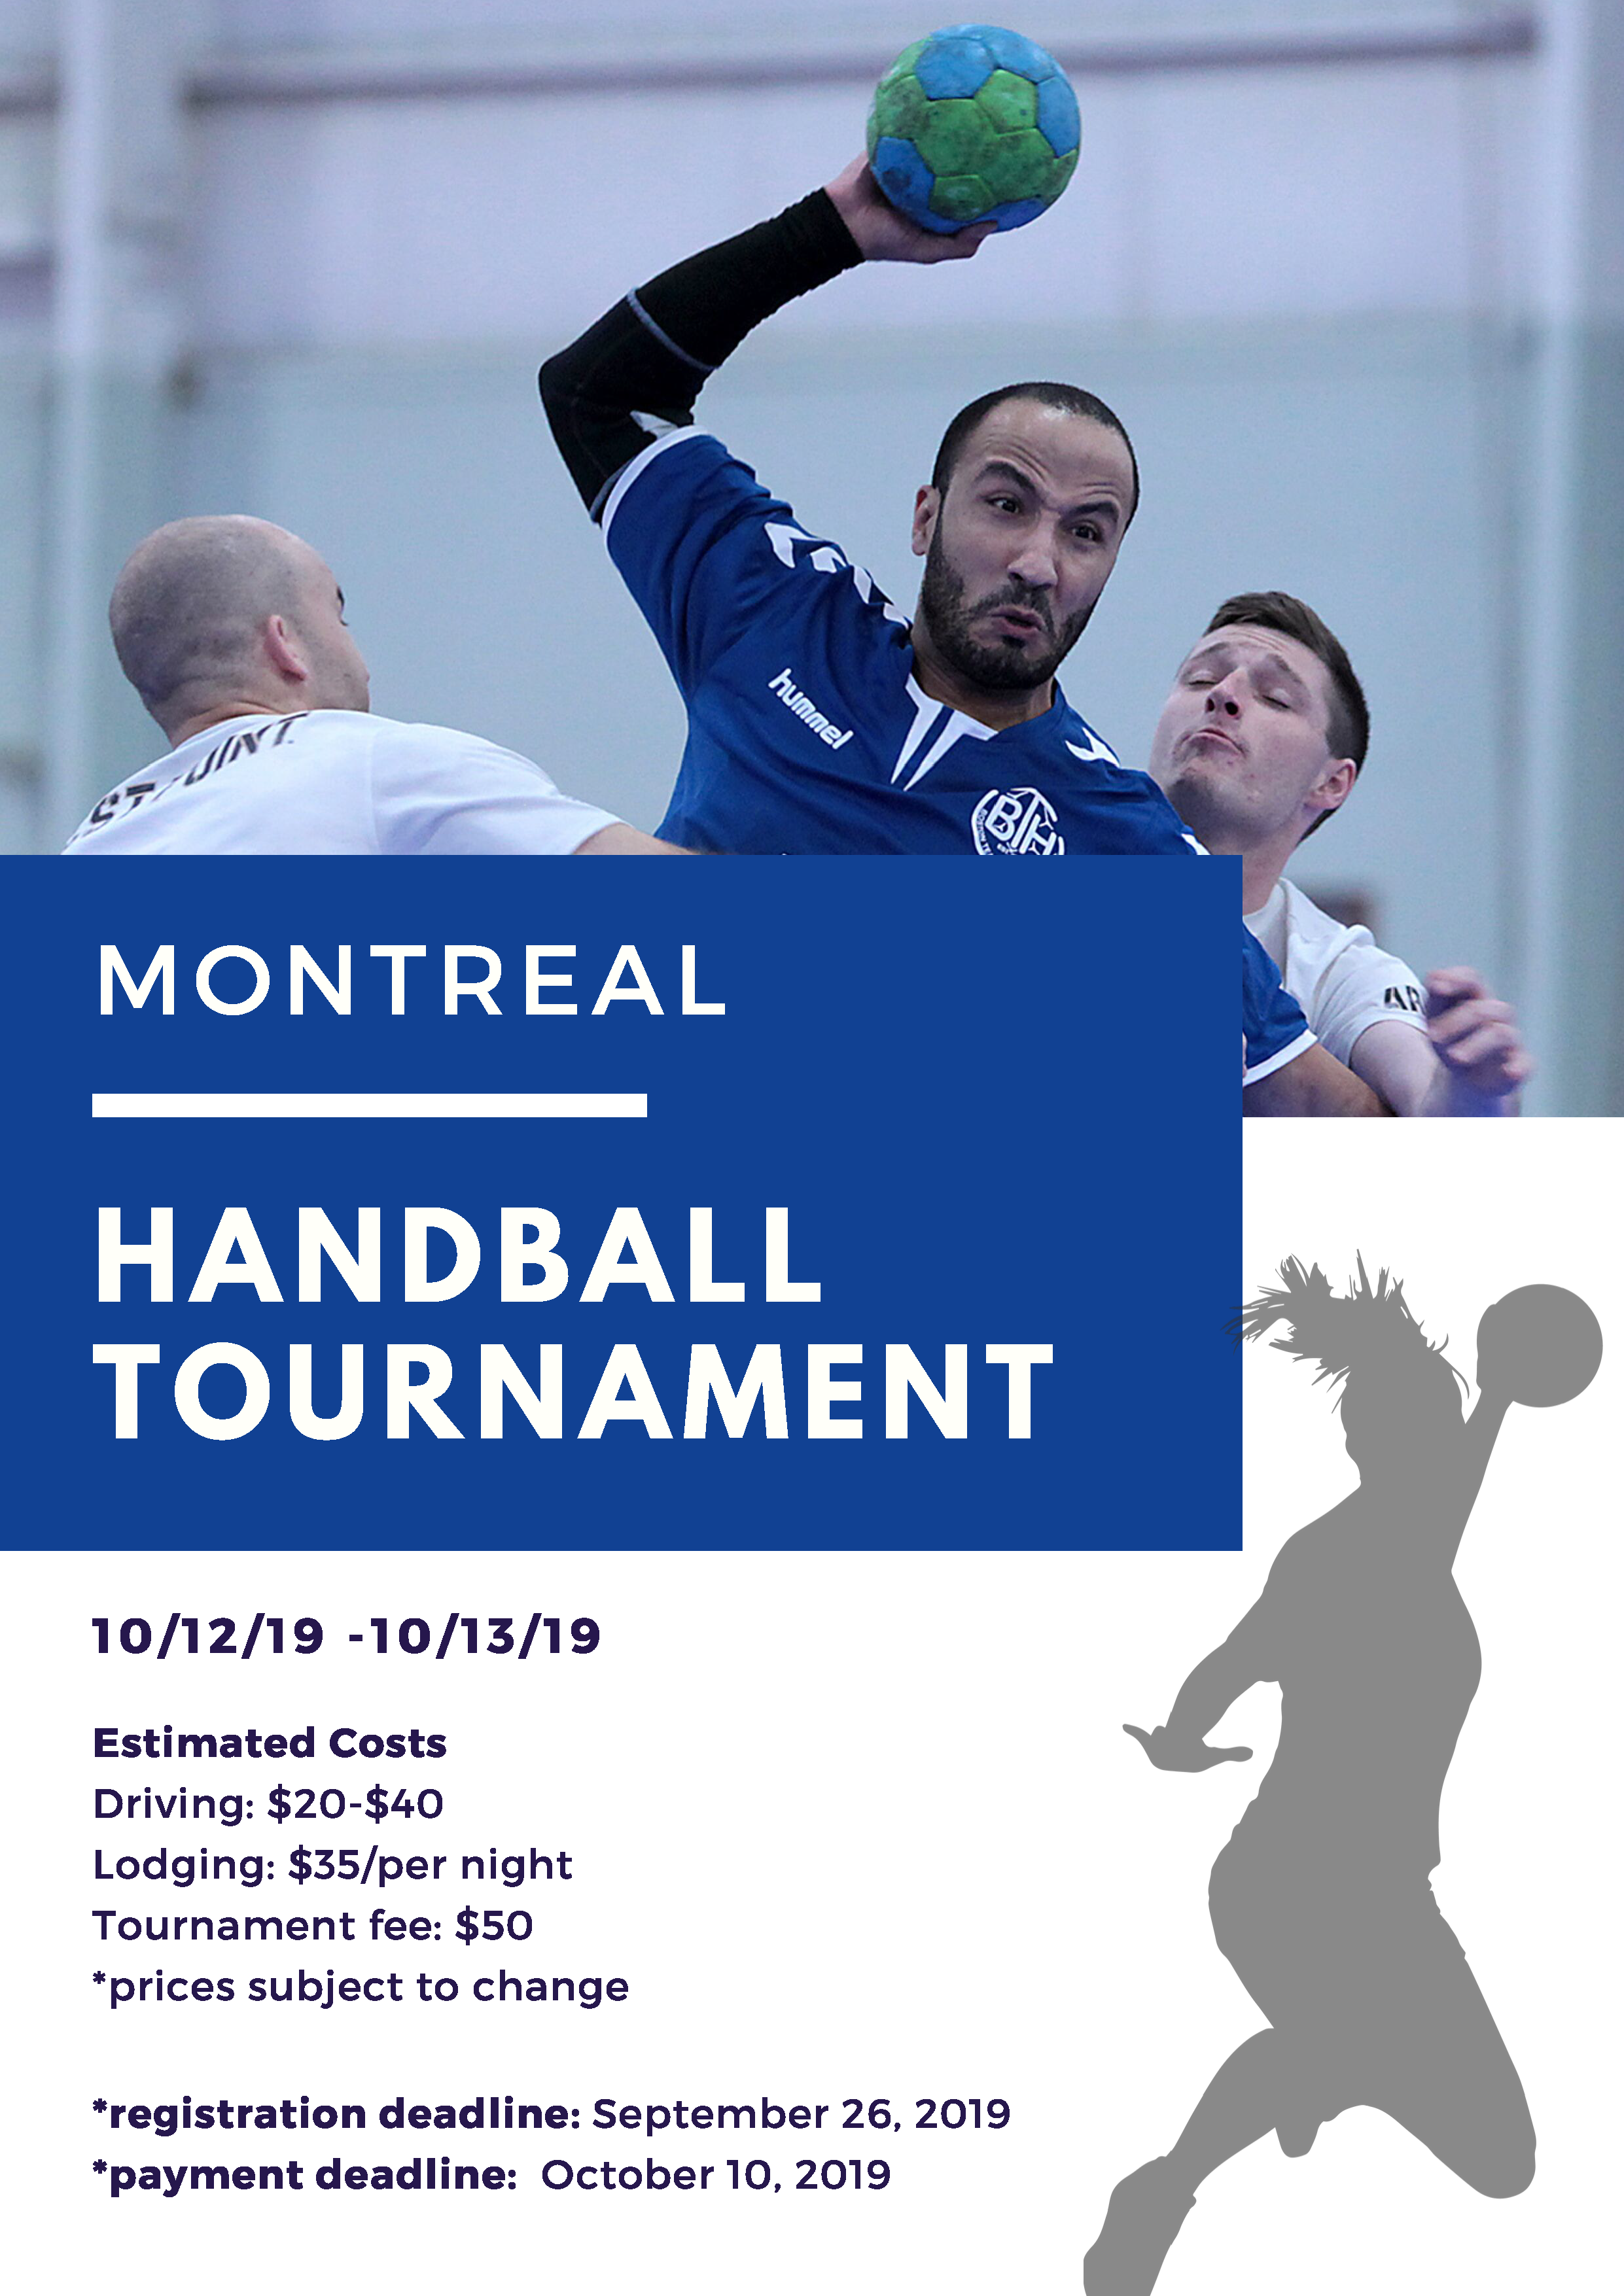 Handball Flyers Templates_Page_2